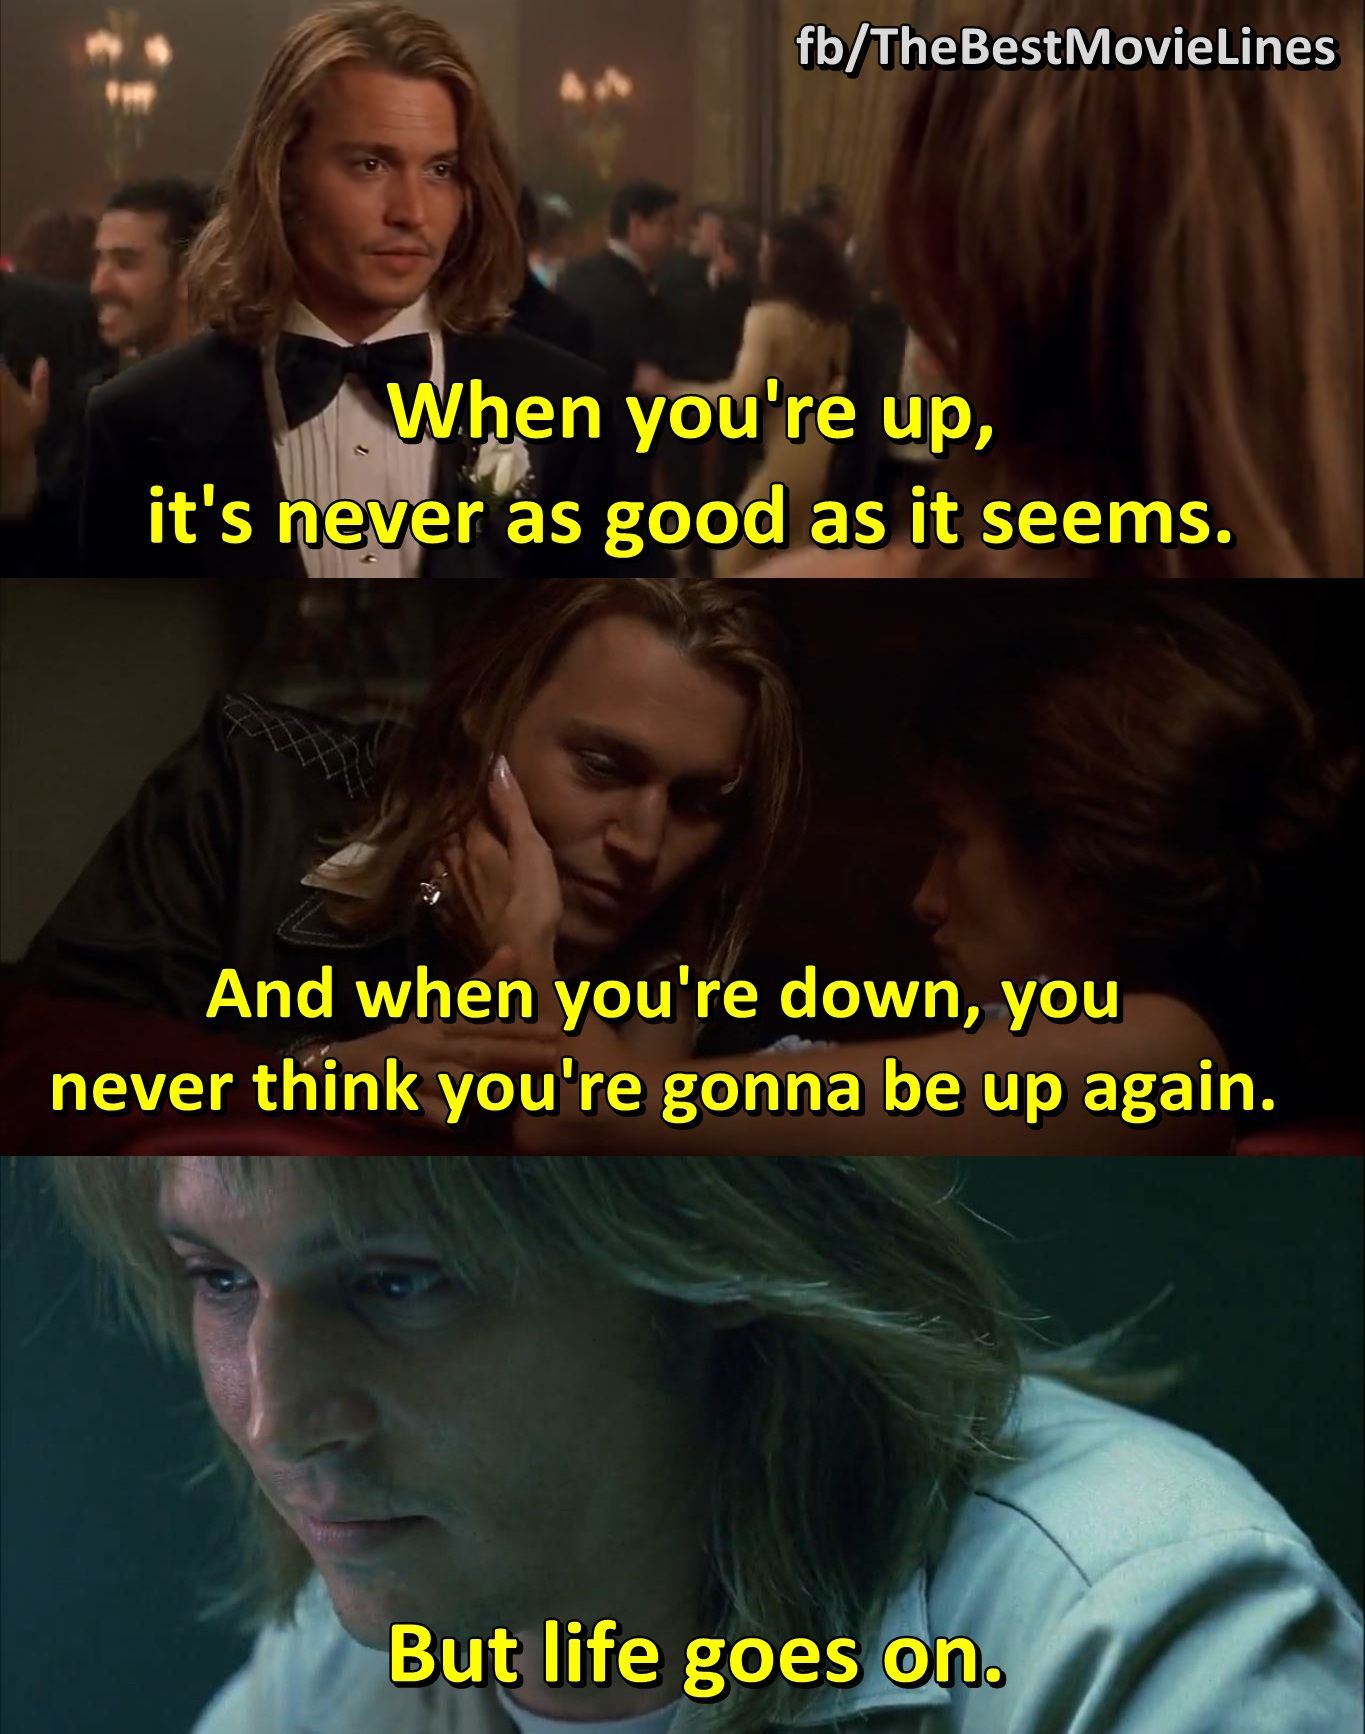 Blow Movie Quotes Blow 2001 Johnny Depp Penelope Cruz | The Best Movie Lines  Blow Movie Quotes